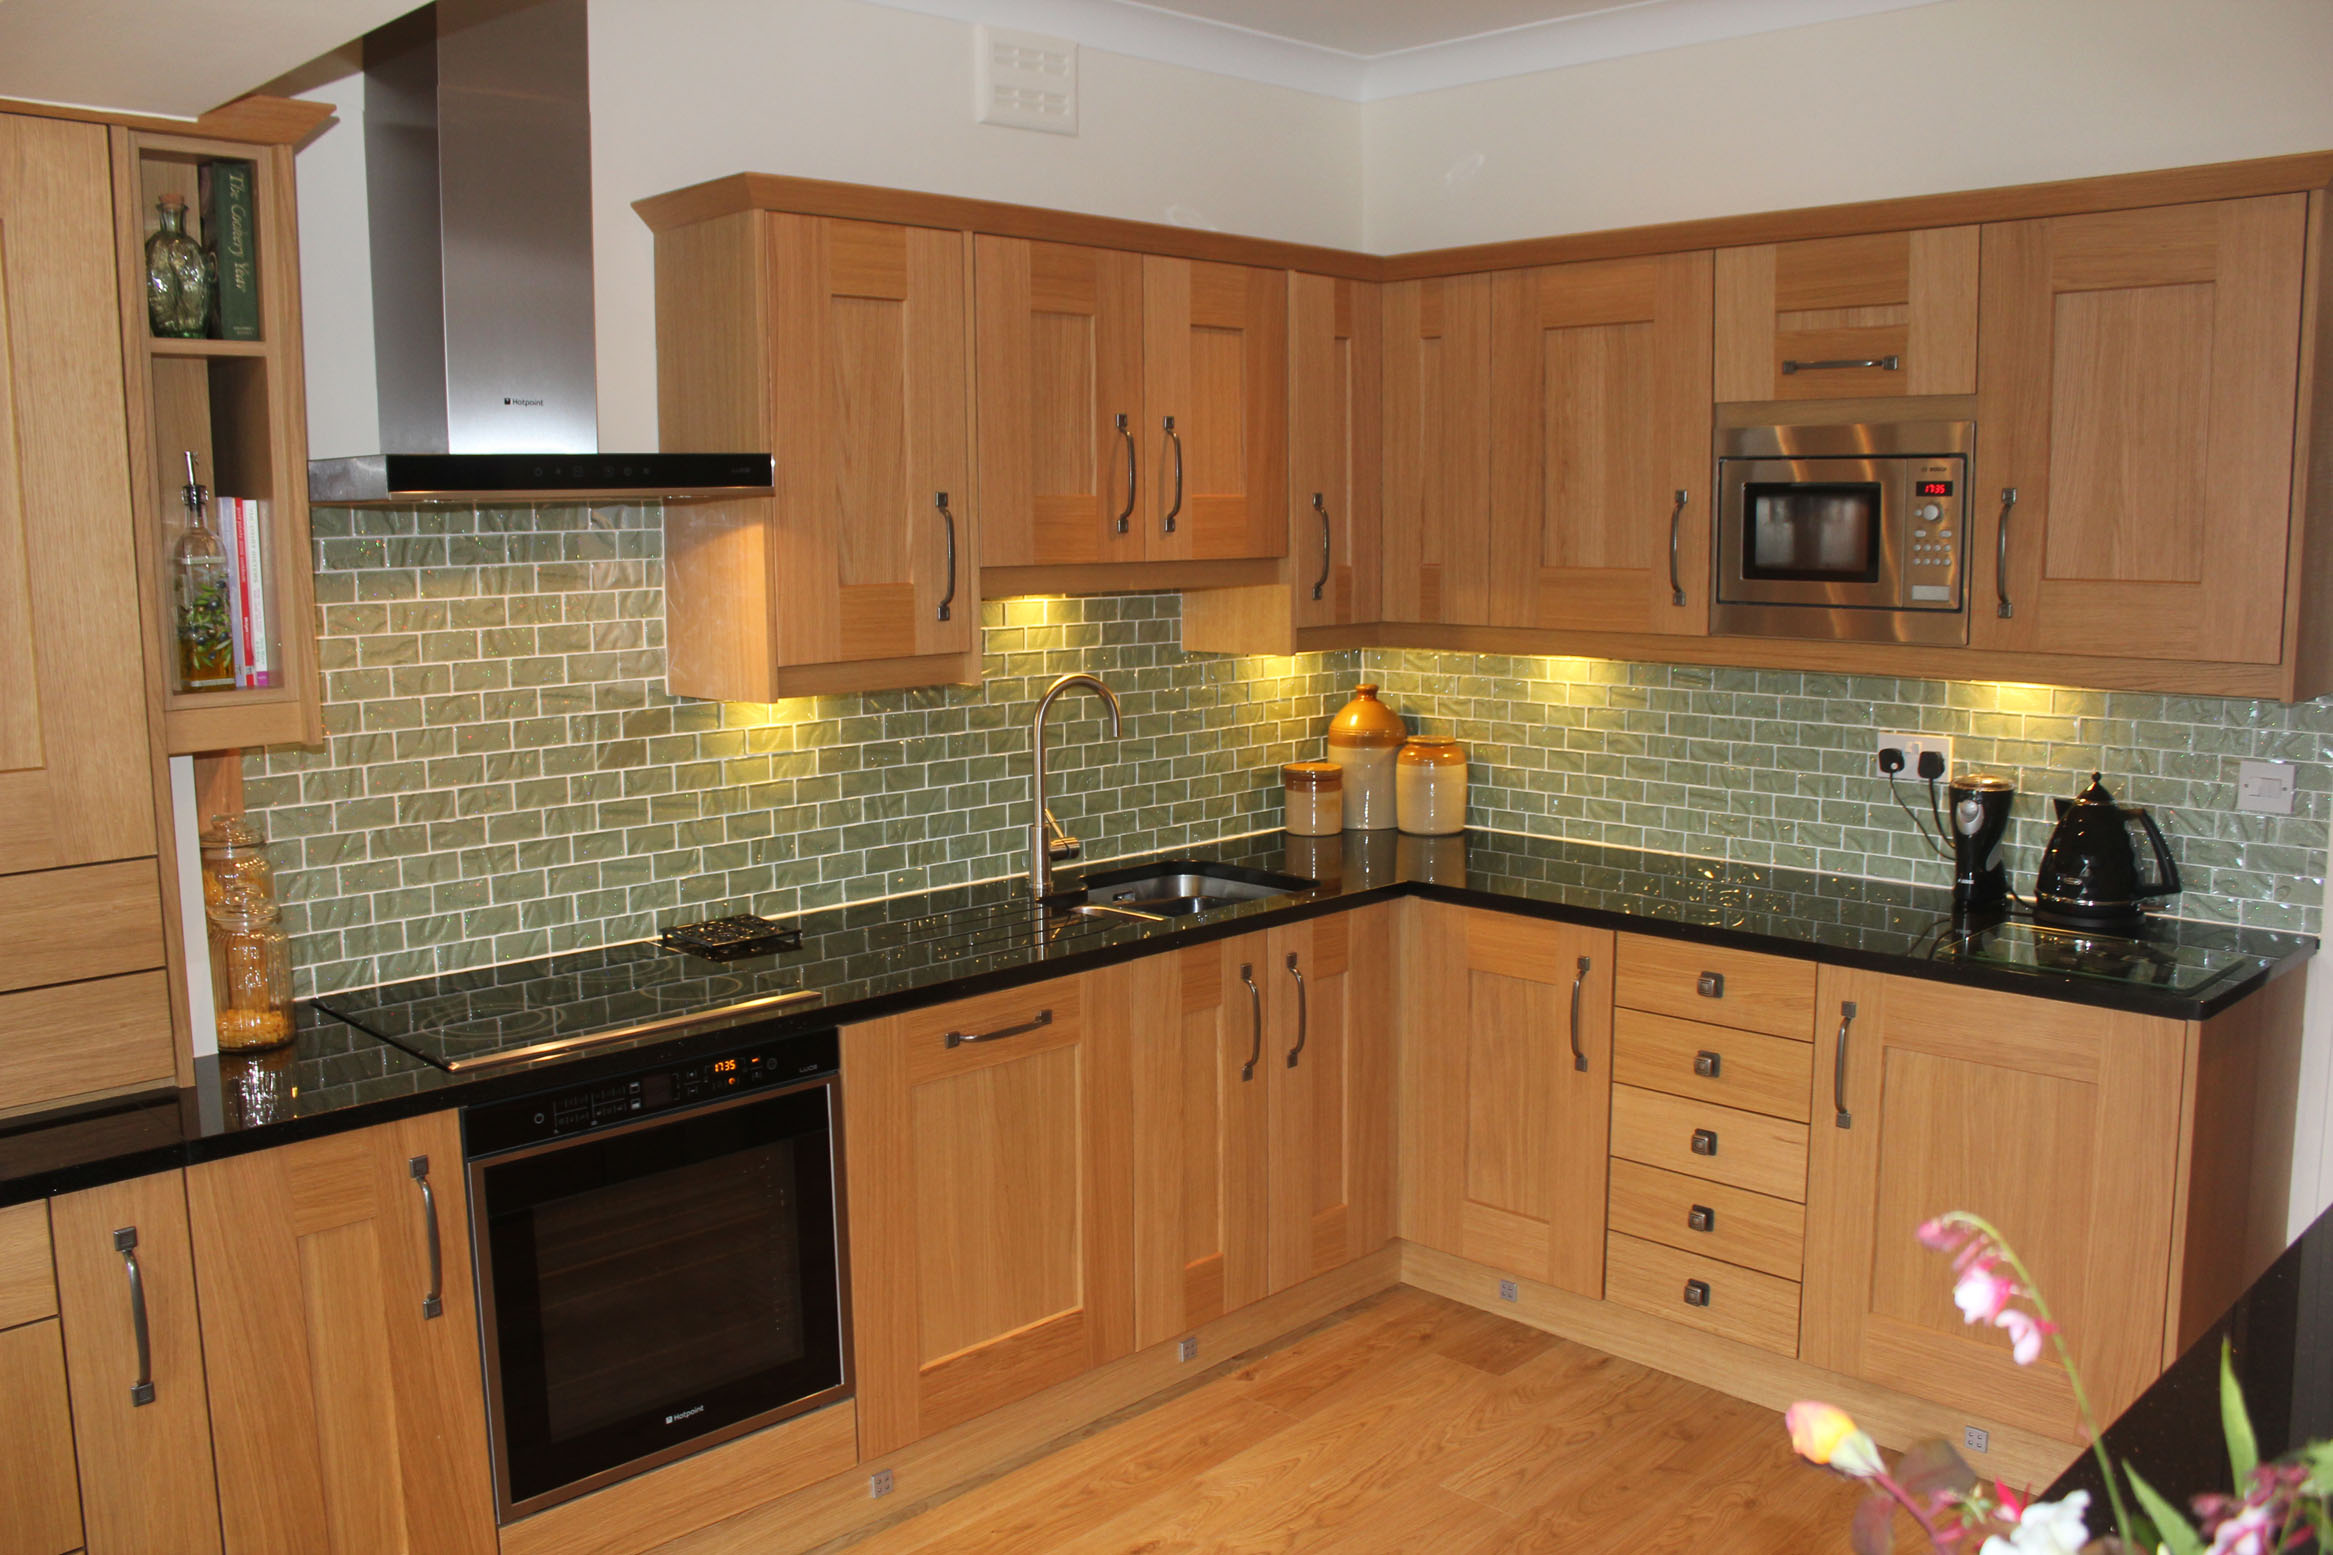 Kitchen Cabinets On Sale Fitted Kitchens Bedrooms Castleford Brownleys